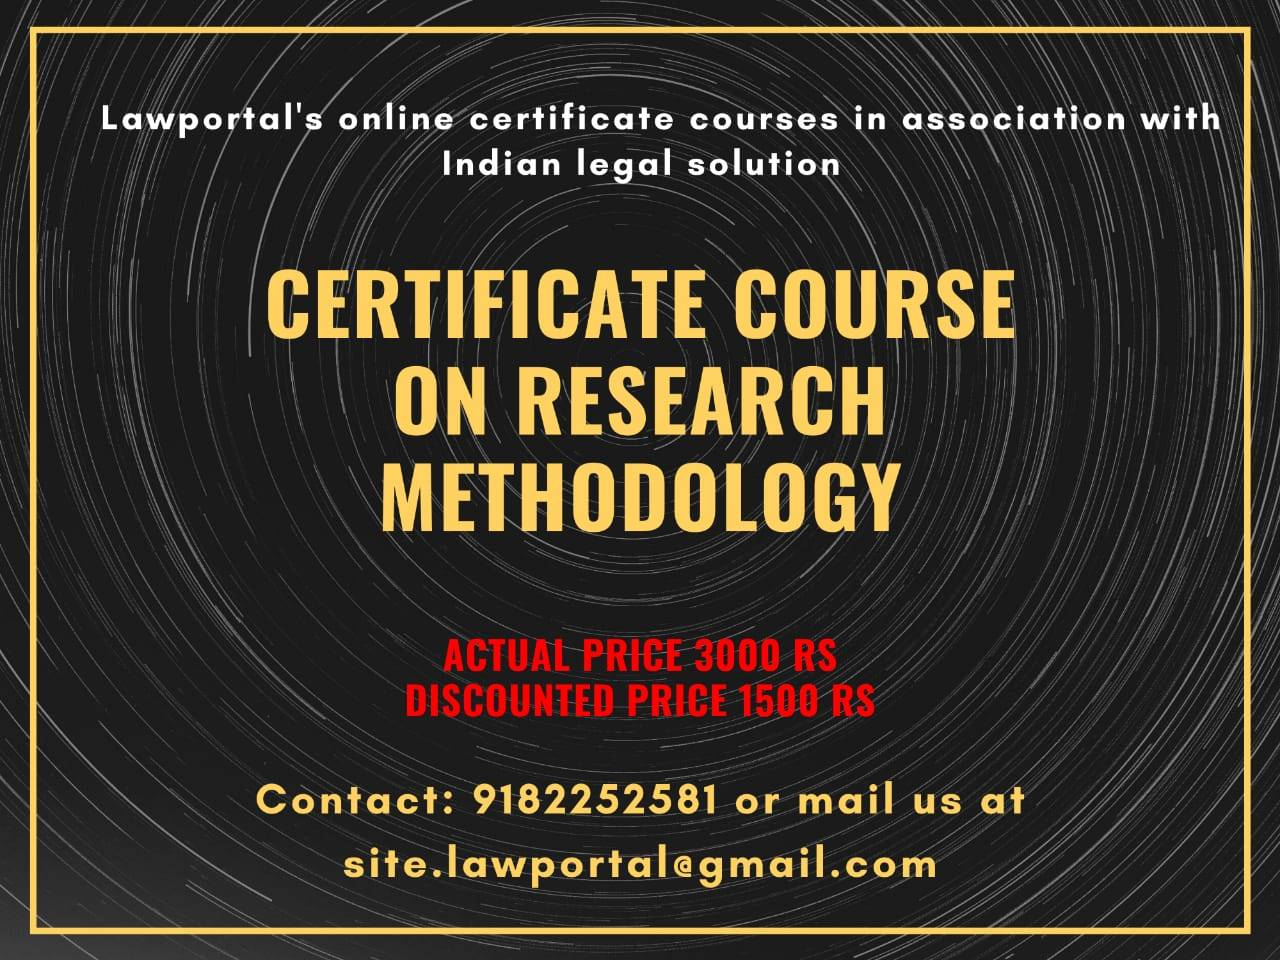 05ff316f 065f 417c aea2 229146ce3108 Law column's online certificate course in association with Indian legal solutions